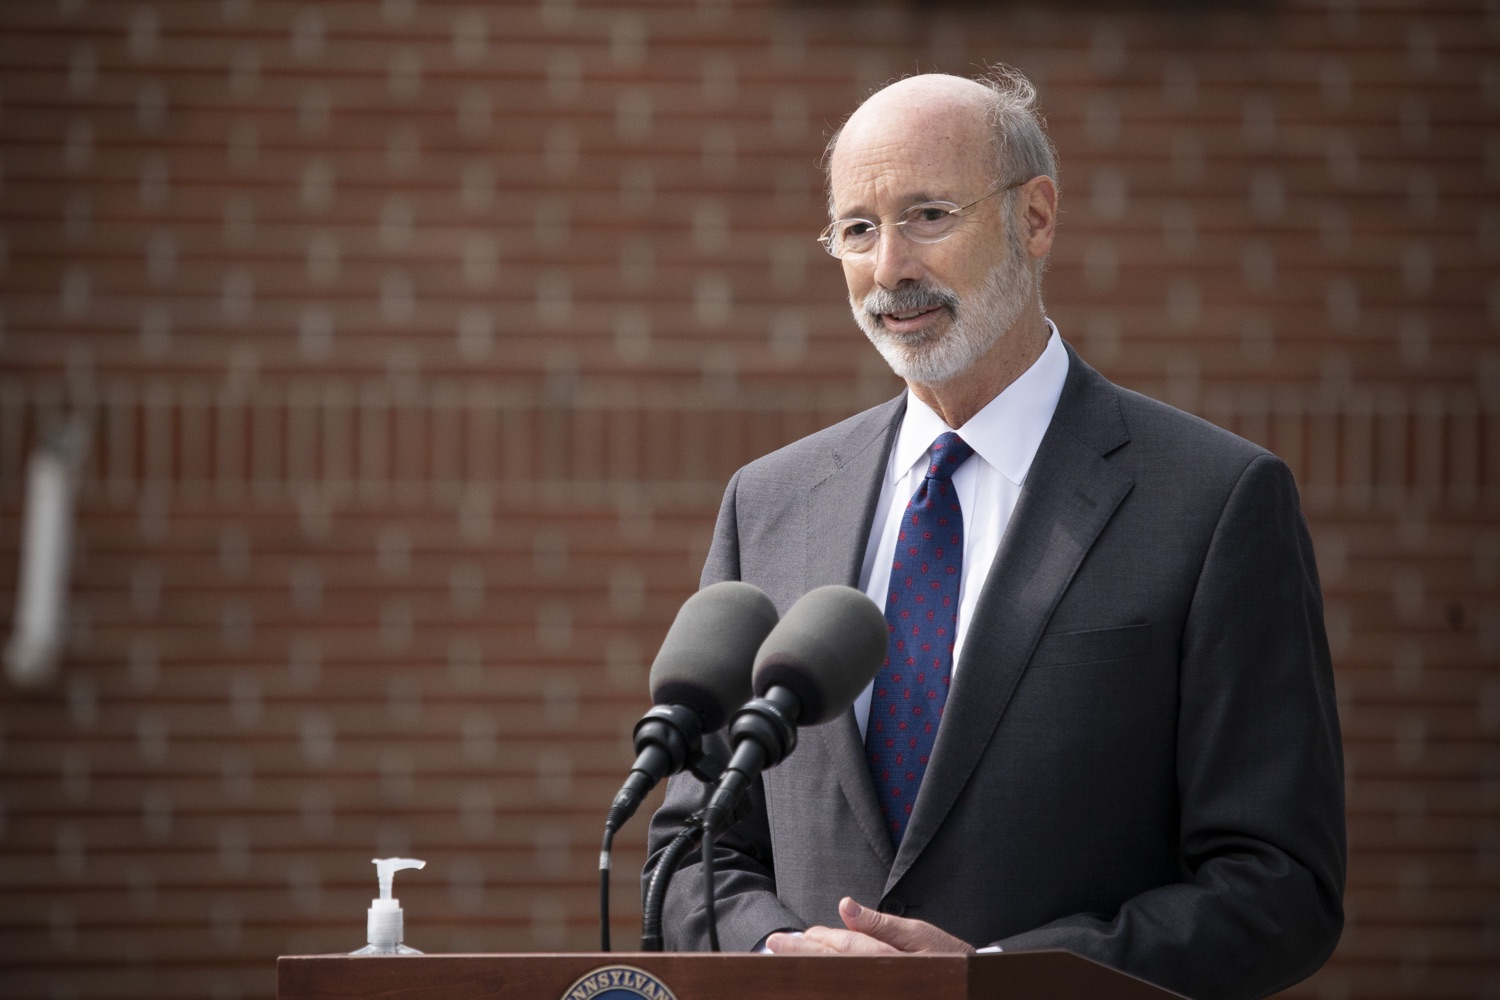 "<a href=""https://filesource.wostreaming.net/commonwealthofpa/photo/18259_gov_electionReform_dz_015.jpg"" target=""_blank"">⇣ Download Photo<br></a>Pennsylvania Governor Tom Wolf speaking to the press.  With only seven weeks left before the Nov. 3 election, Governor Tom Wolf is urging immediate legislative action to ensure voters receive their mail-in ballots early and give counties more time to process and count ballots before election day. The governor also reassured Pennsylvanians that in-person voting is safe, and all eligible votes will be counted. SEPTEMBER 14, 2020 - YORK, PA."